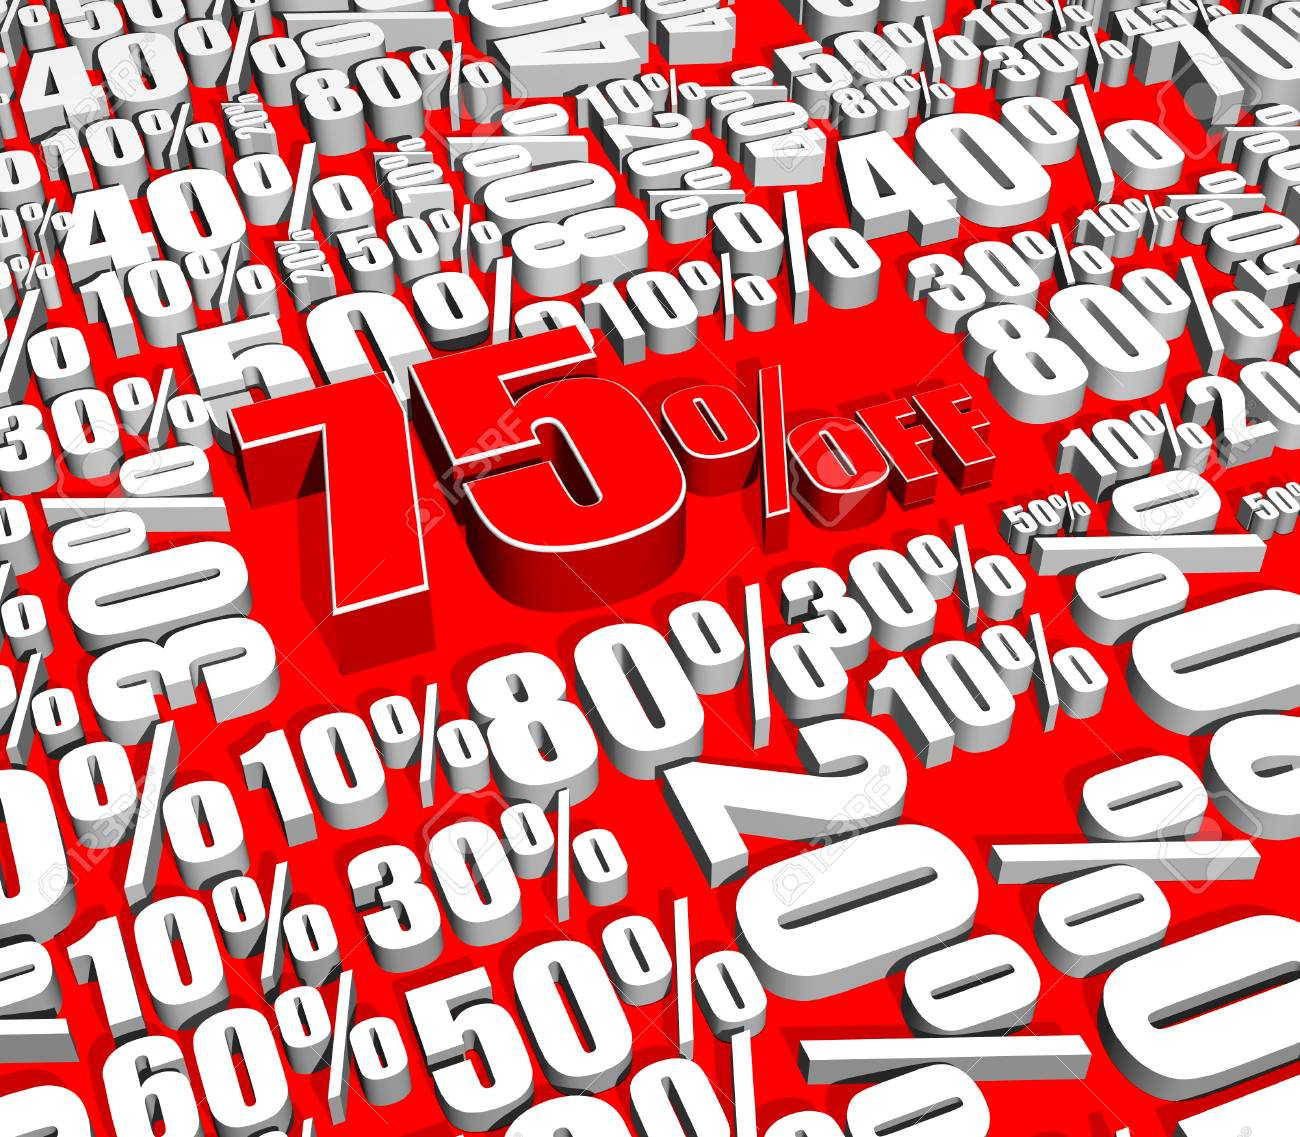 Sale 75% Off on various percentages Stock Photo - 26012263